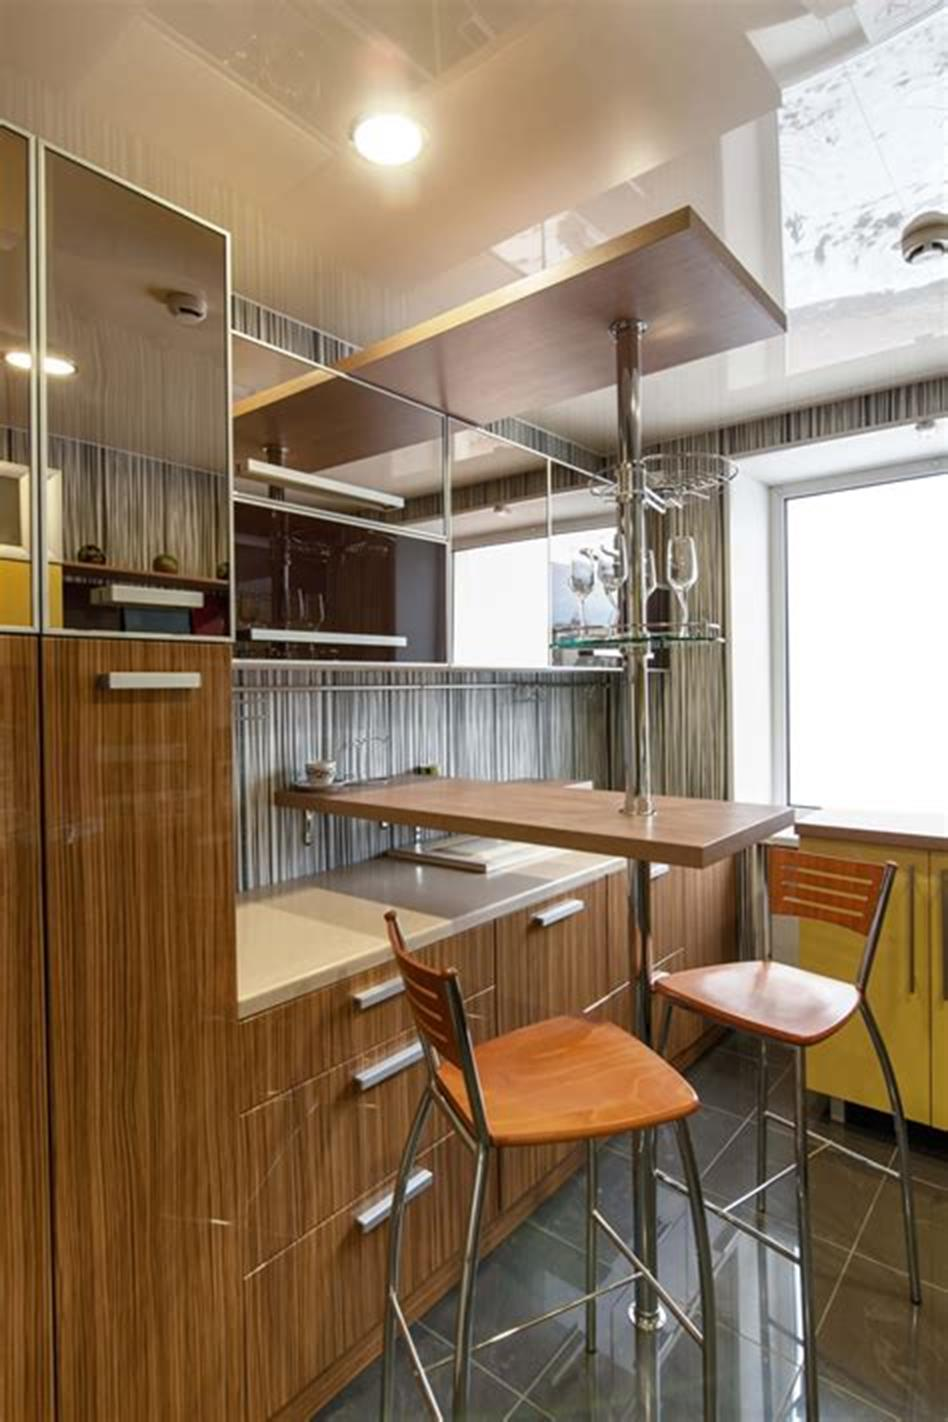 35 Stunning Contemporary Kitchen Design Ideas Youll Love 55